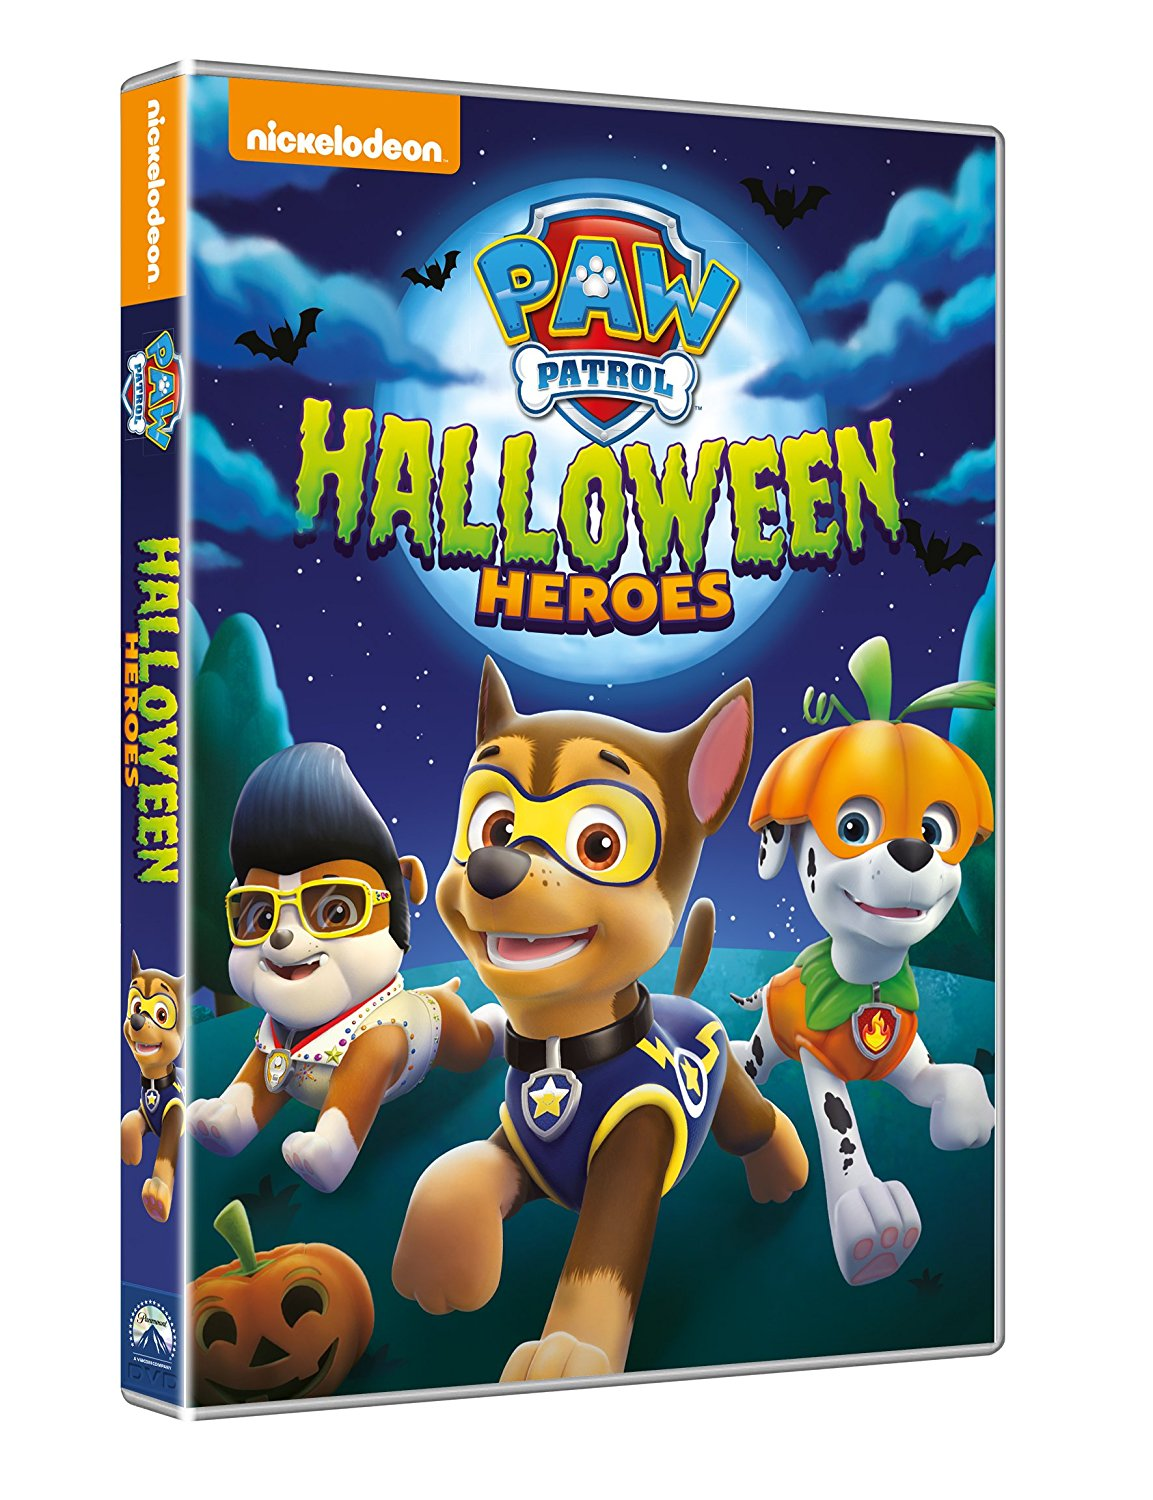 Halloween Heroes | PAW Patrol Wiki | FANDOM powered by Wikia